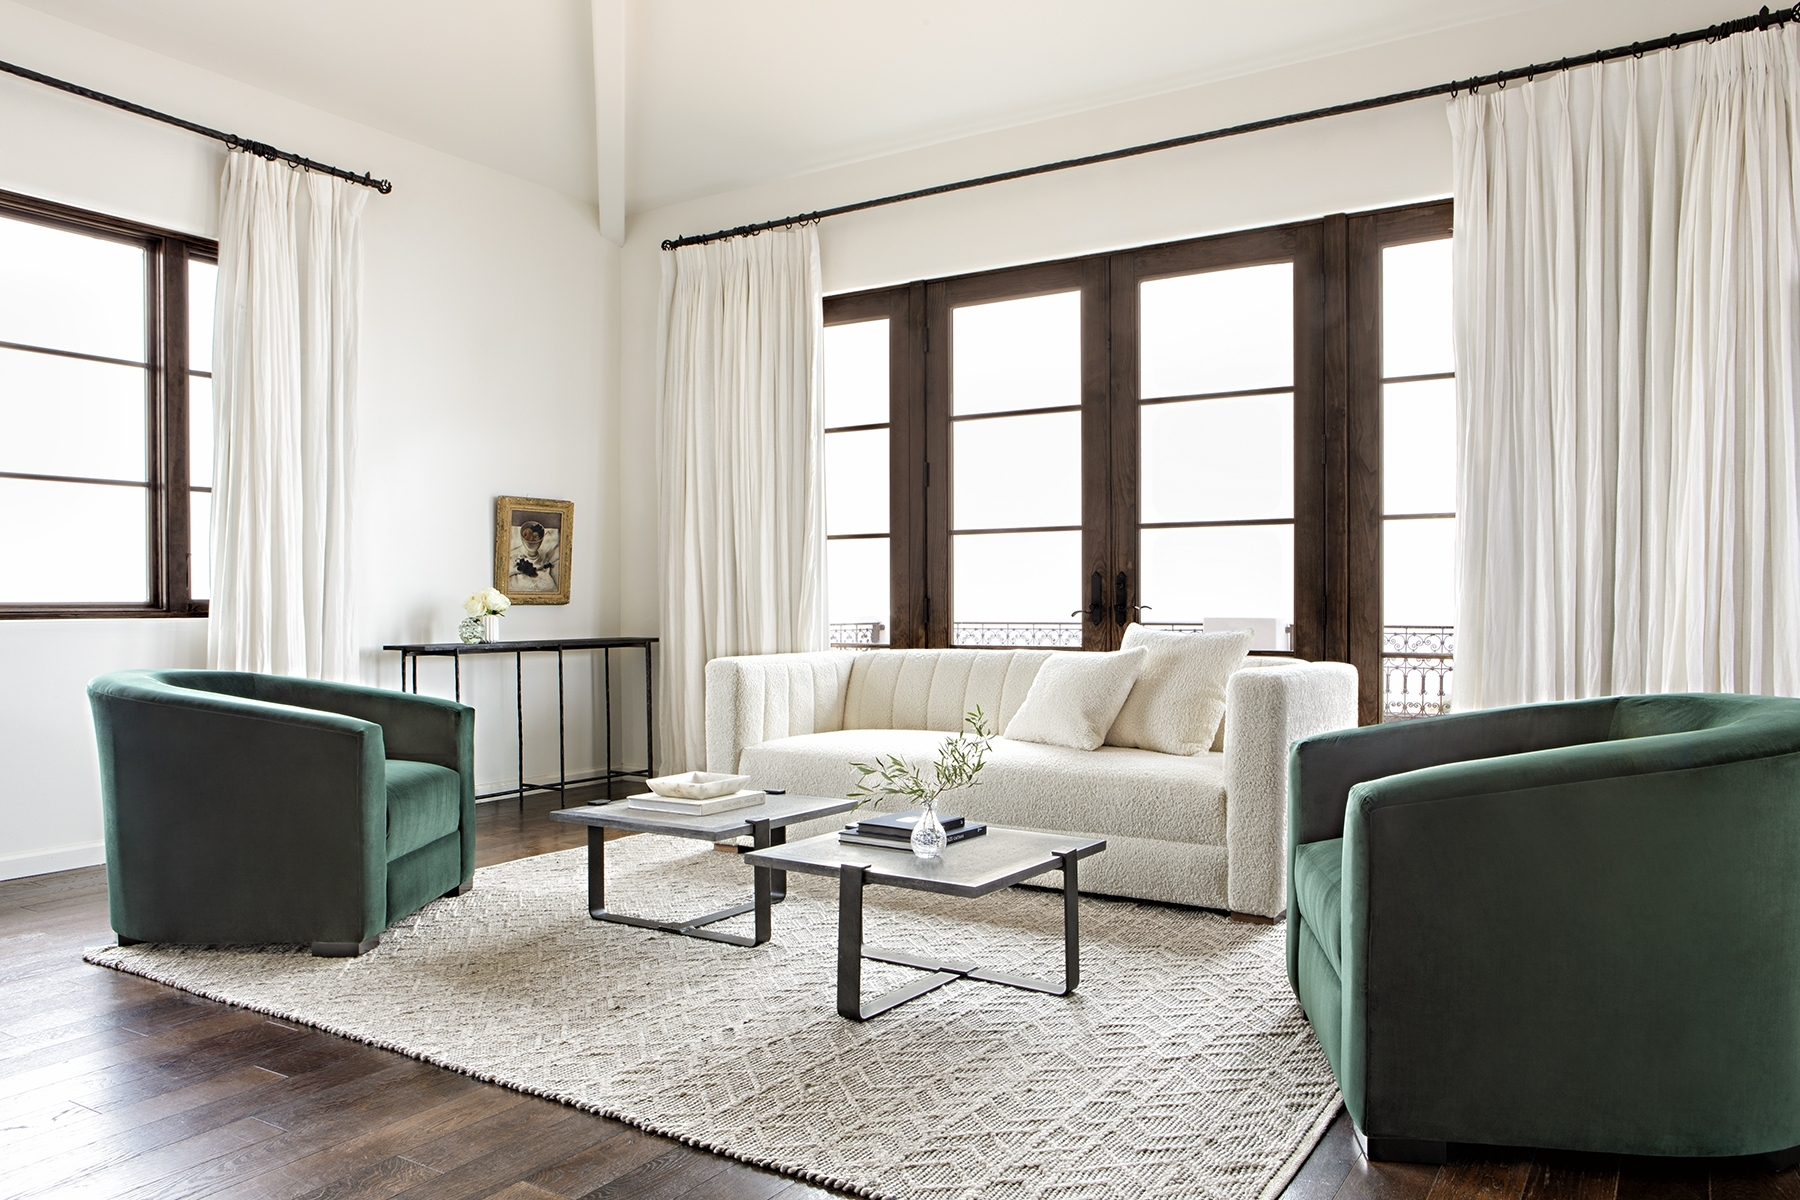 Nate Berkus & Jeremiah Brent's Newest Affordable Collection | Rue In Whitley 3 Piece Sectionals By Nate Berkus And Jeremiah Brent (View 19 of 25)